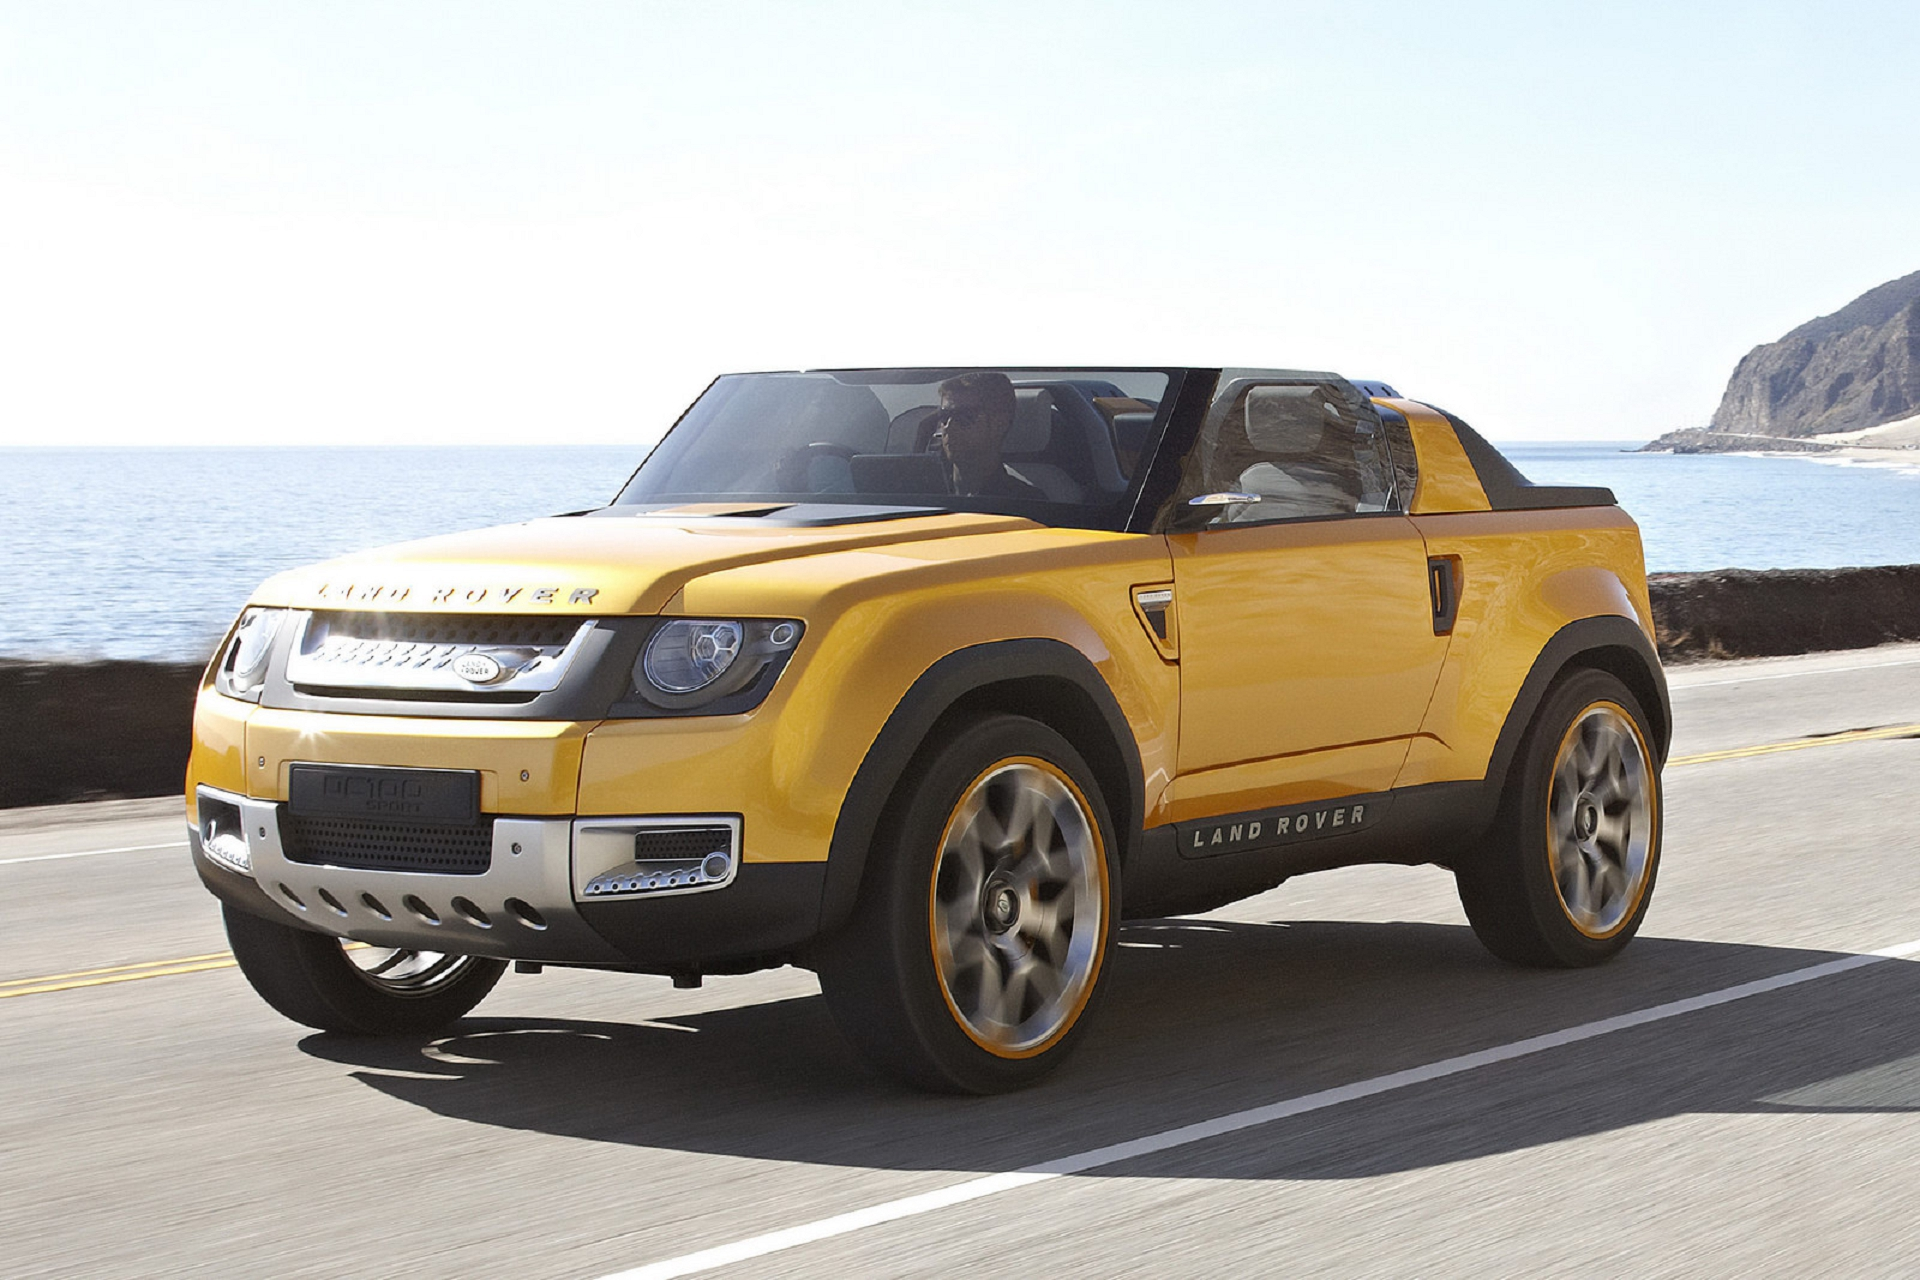 Land Rover Images